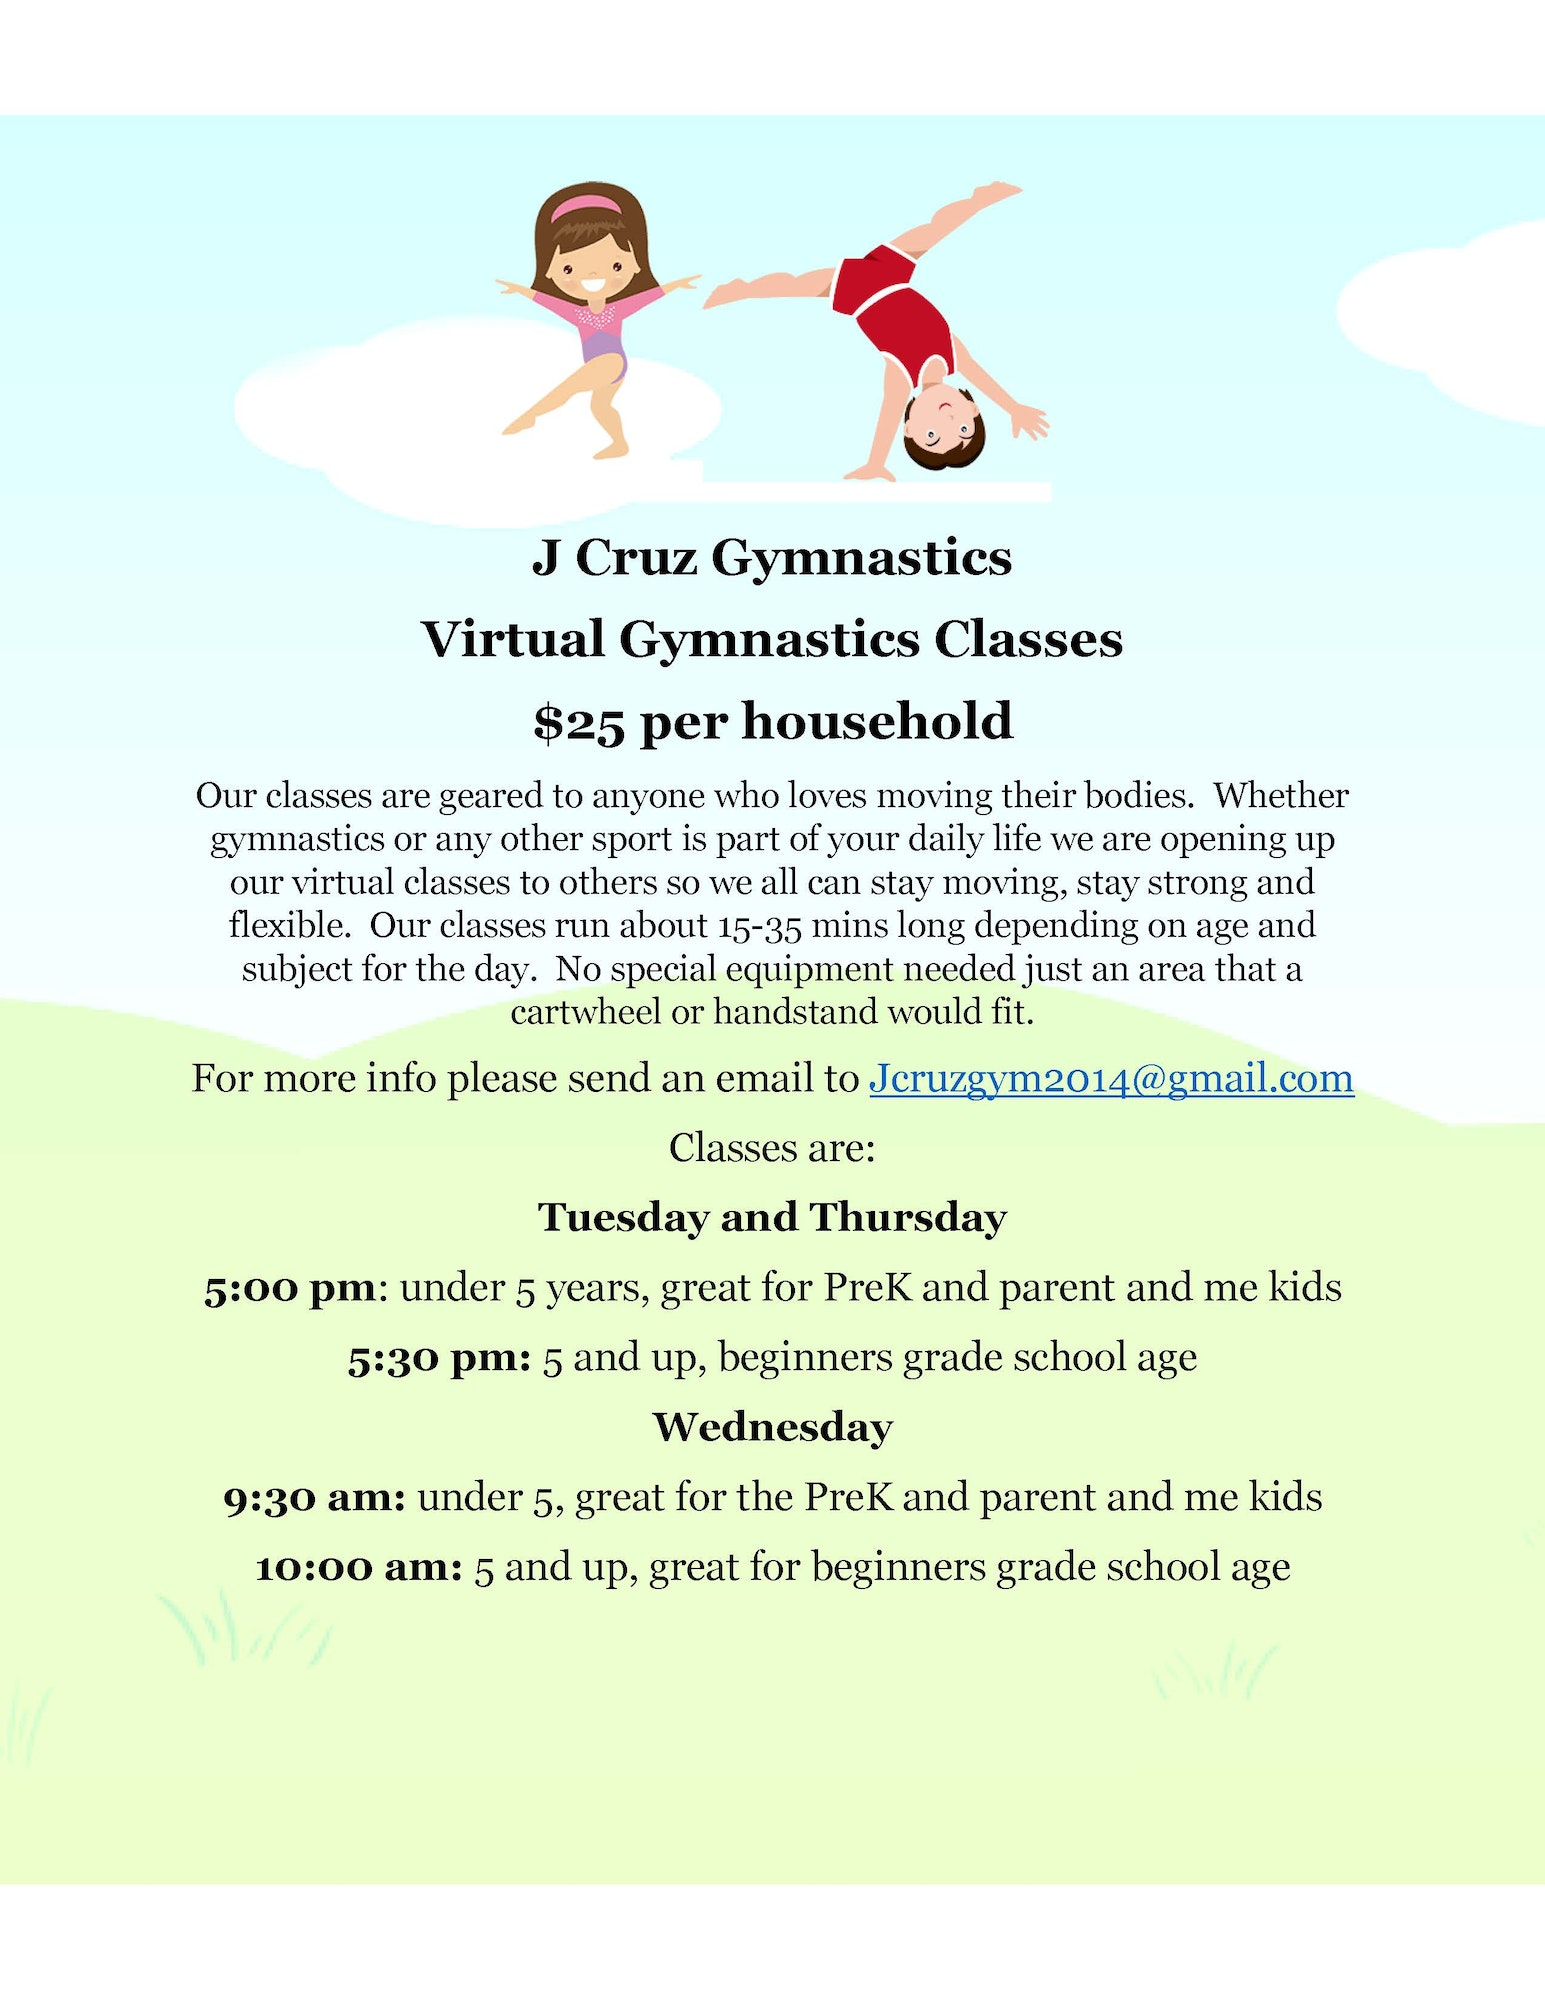 J Cruz Gymnastics Virtual Gymnastics Classes $25 per household. Our classes are geared to anyone who loves moving their bodies. Whether gymnastics or any other sport is part of your daily life we are opening up our virtual classes to others so we all can stay moving, stay strong and flexible. Our classes run about 15-35 minutes long depending on age and subject of the day. No special equipment needed just an area that a cartwheel or handstand can fit. For more info please send an email to jcruzgym2014@gmail.com. Classes are Tuesday and Thursday 5:00 pm for under 5 years, great for PreK and parent and me kids. 5:30 pm for 5 and up, beginners grade school age. Wednesday 9:30 am for under 5, great for PreK and parent and me kids. 10:00 am for 5 and up, great for beginners grade school age